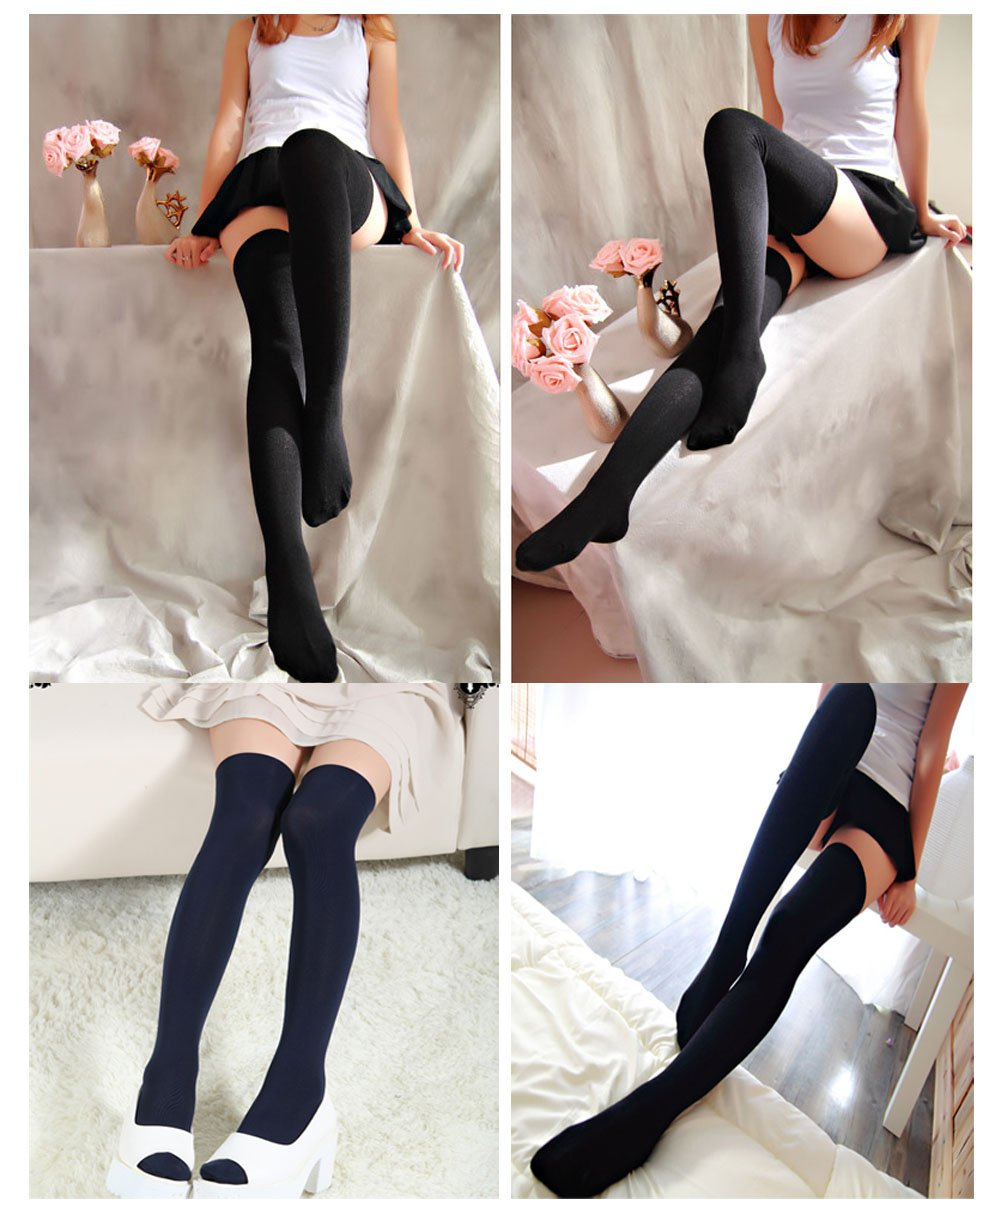 Women's Thigh High Stockings Socks of Solid Color Opaque Sexy,Over the Knee High Leg Socks 5-Pairs(Black) by VANGAY (Image #7)